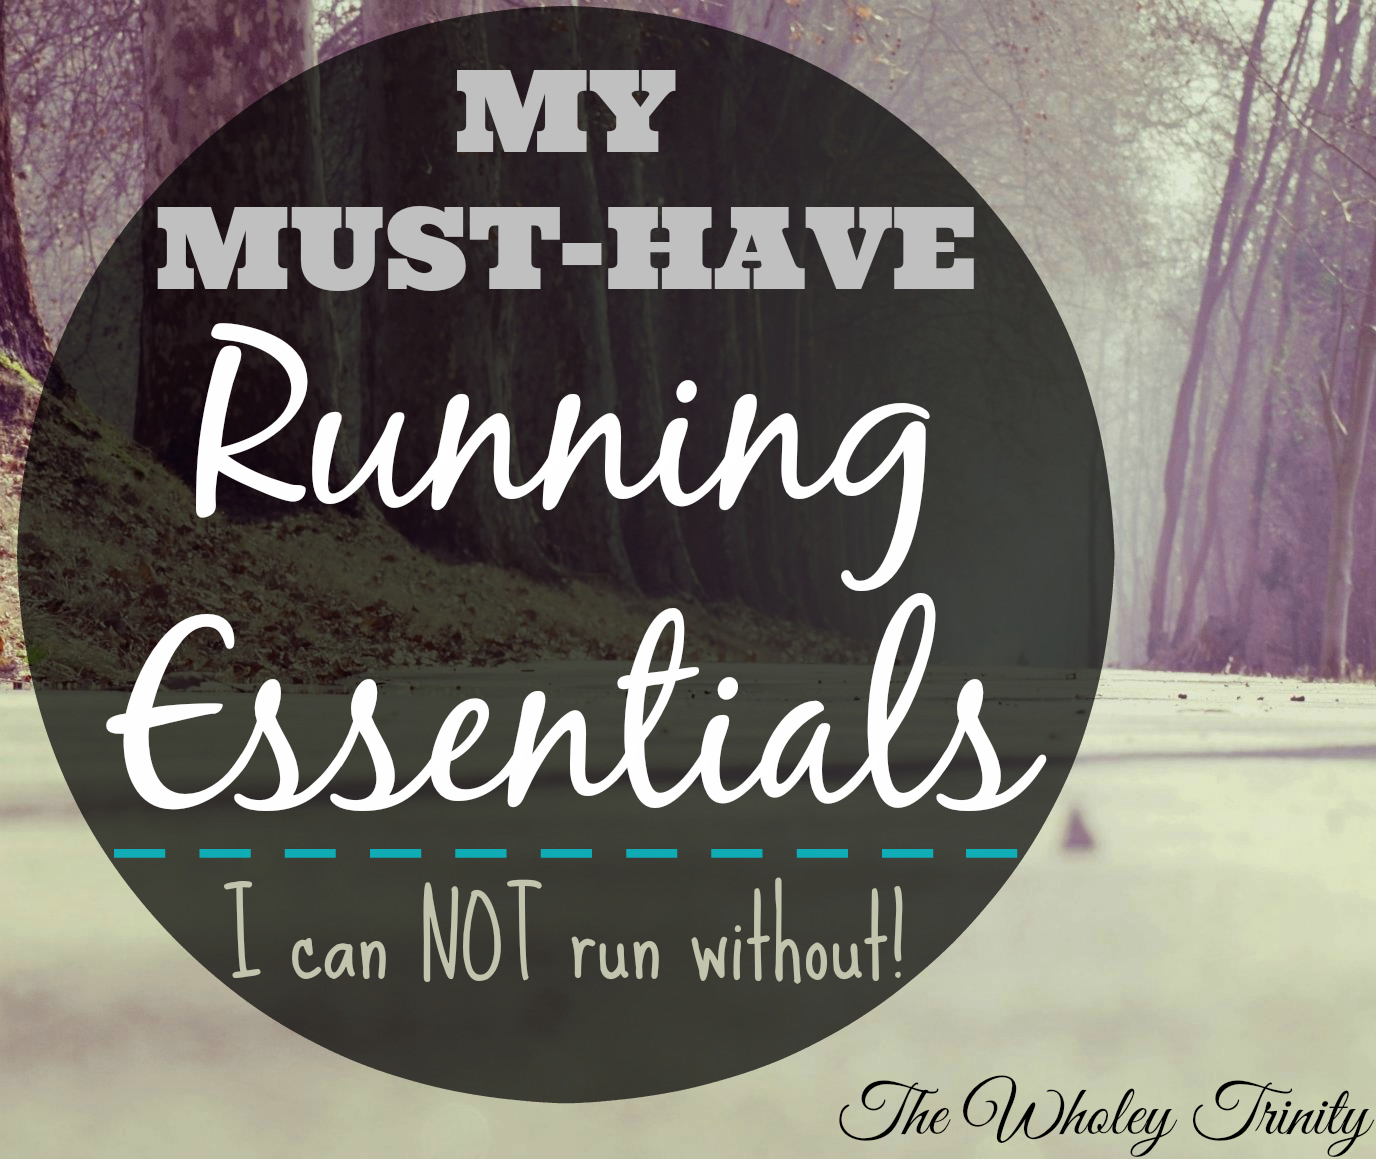 Many things can affect your running performance. These are the items I can NOT run without!!